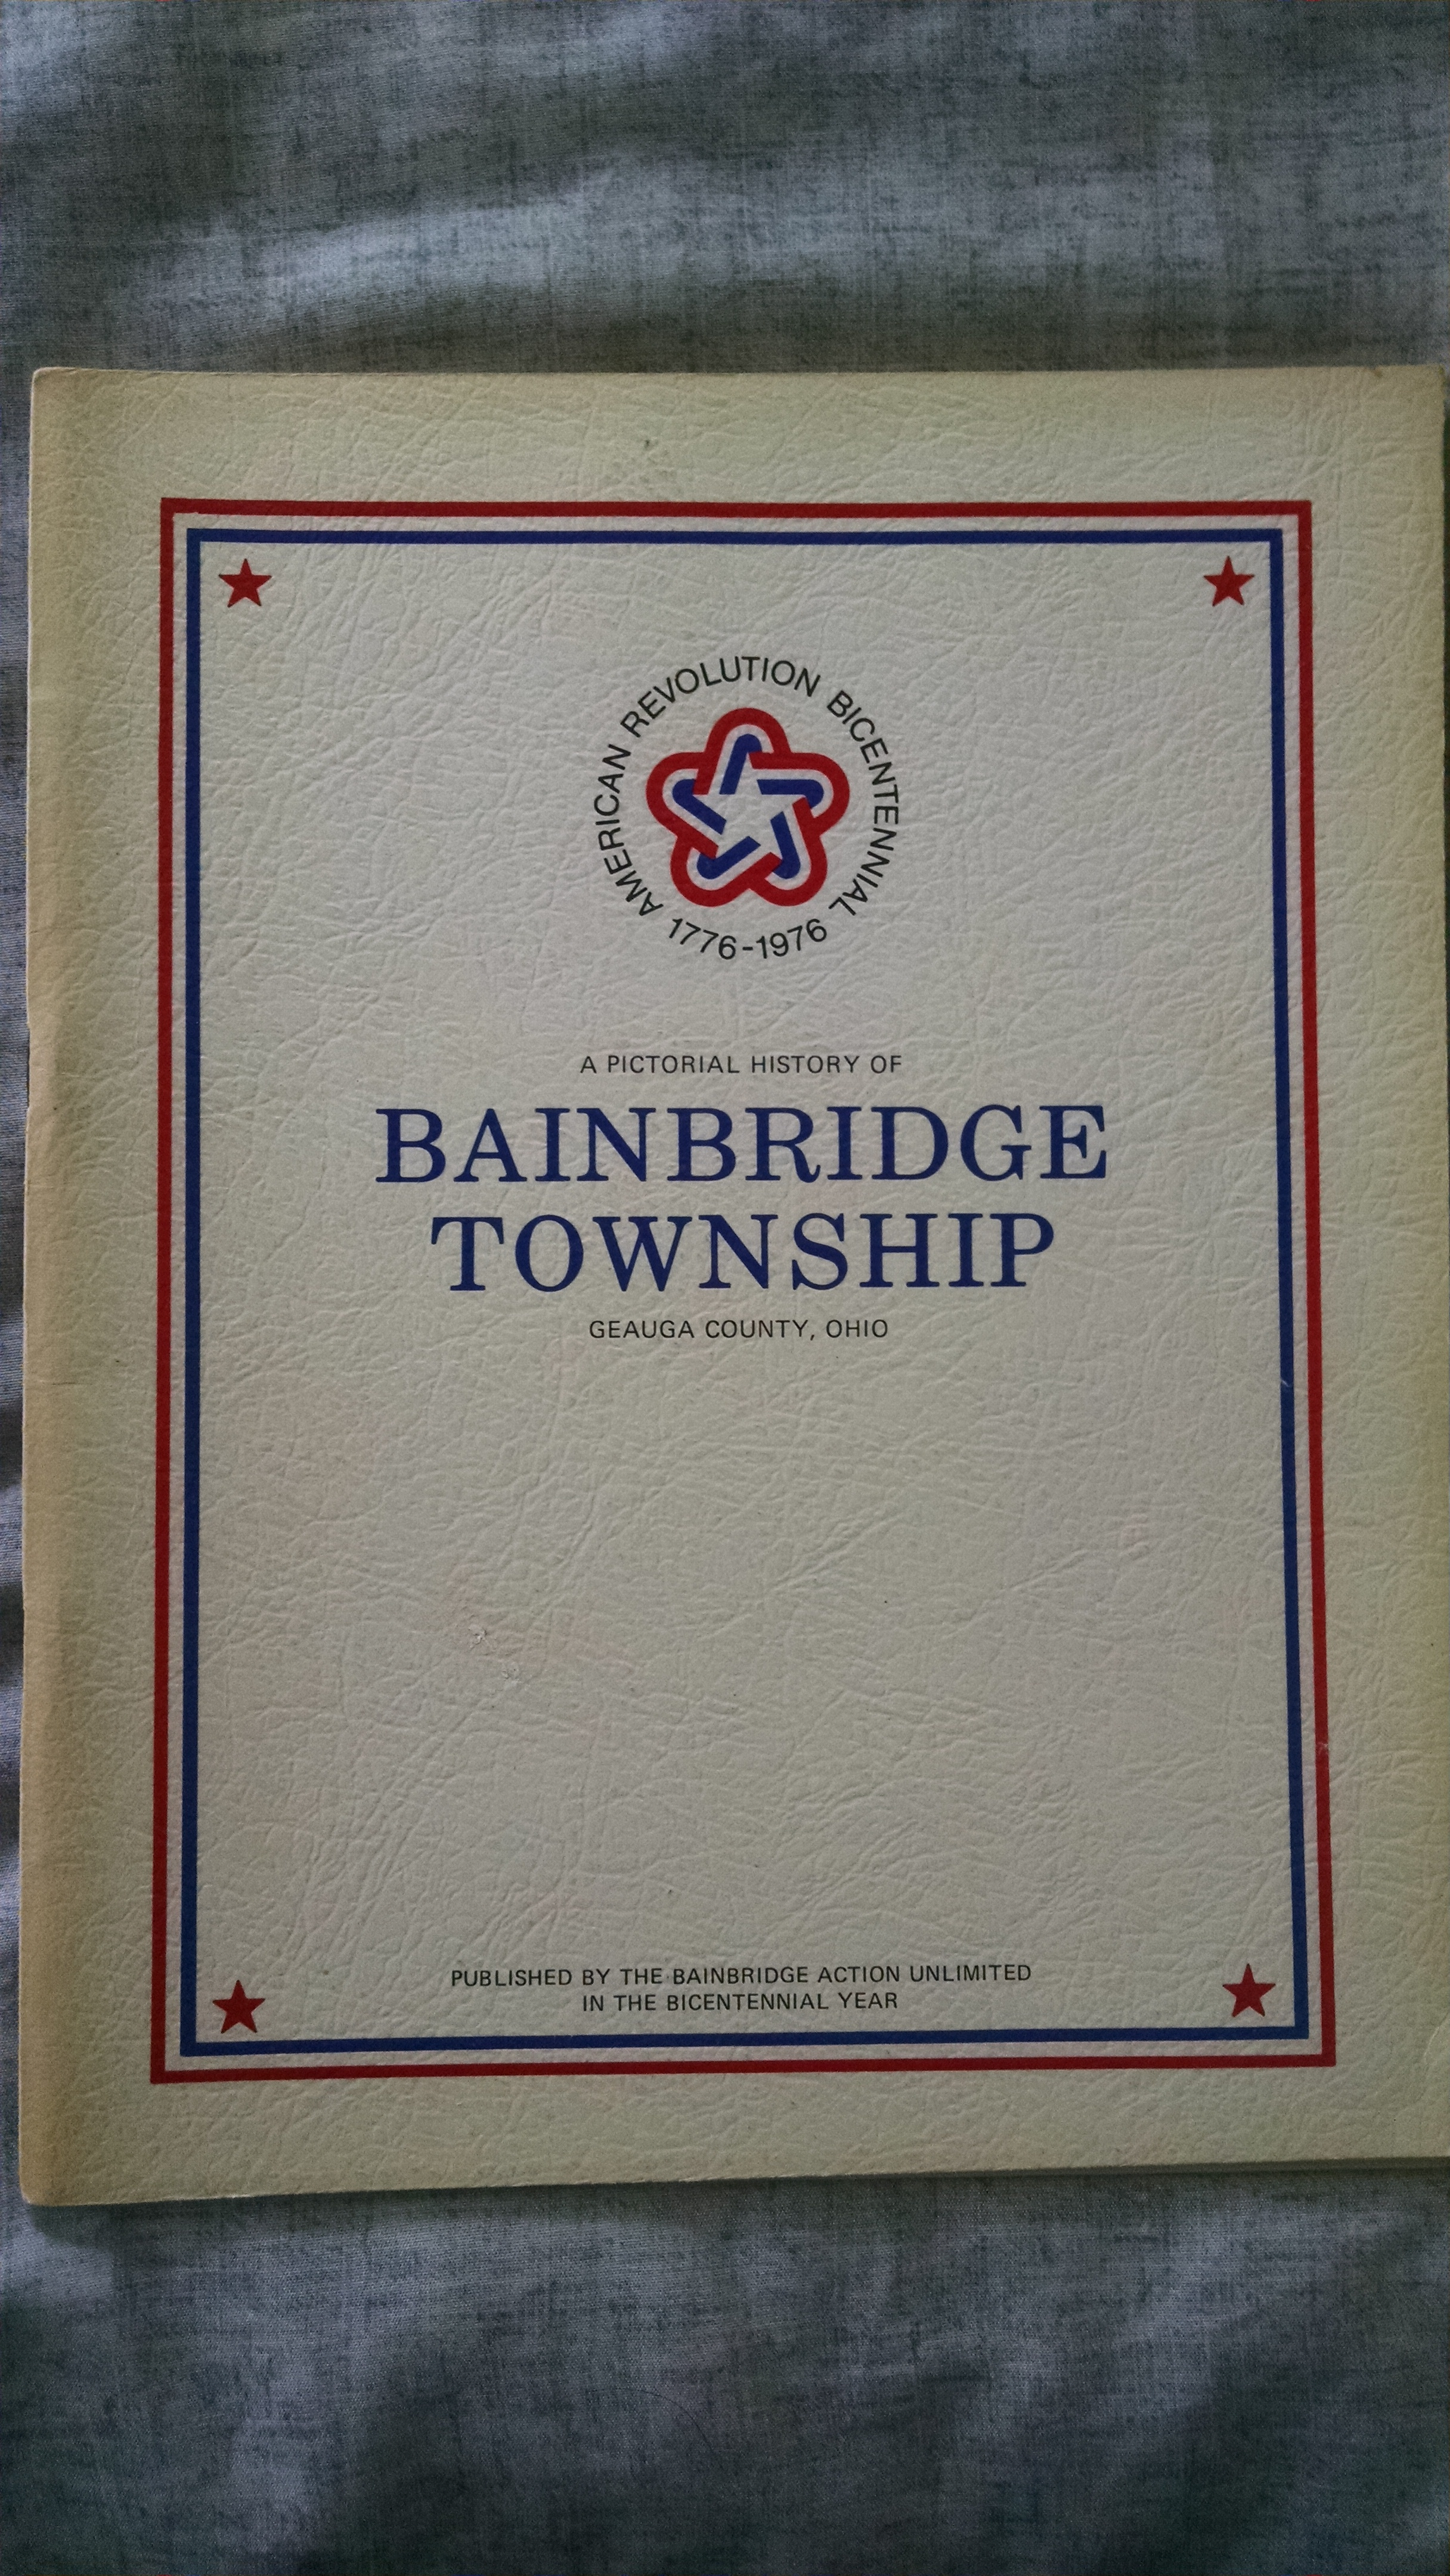 Image for A PICTORIAL HISTORY OF BAINBRIDGE TOWNSHIP GEAUGA COUNTY OHIO